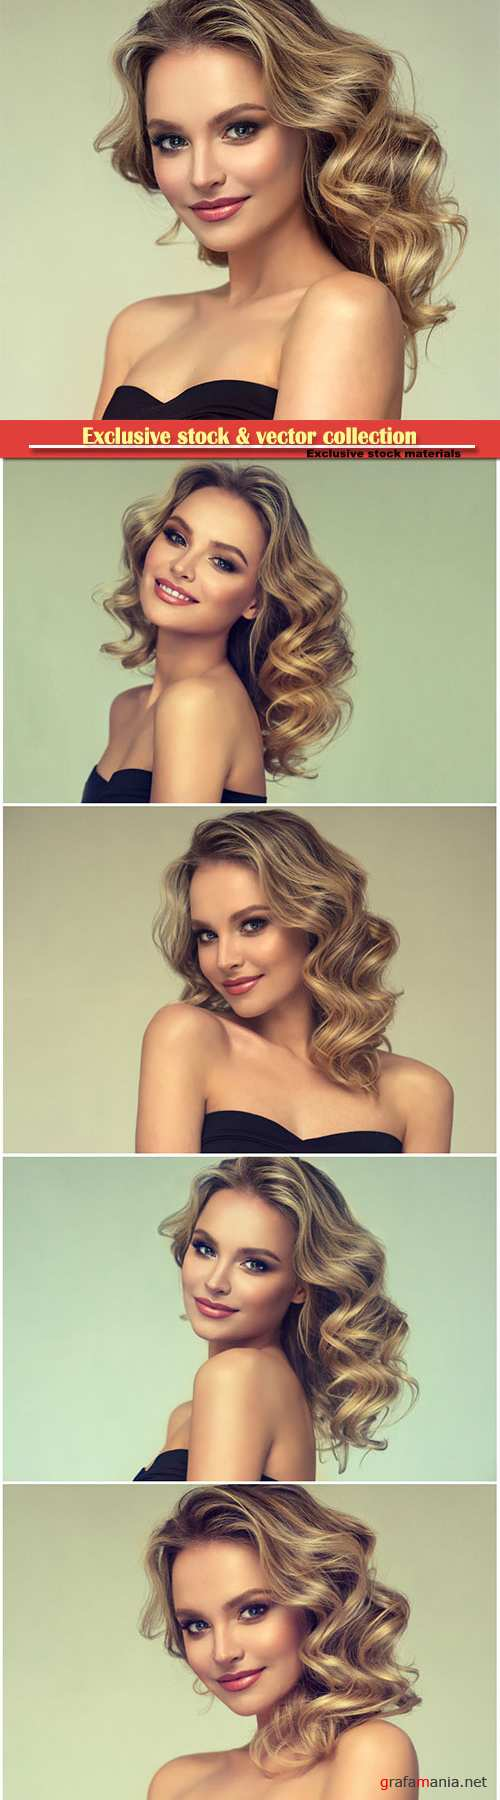 Pretty blond-haired model with middle length curly, loose hairstyle and attractive makeup